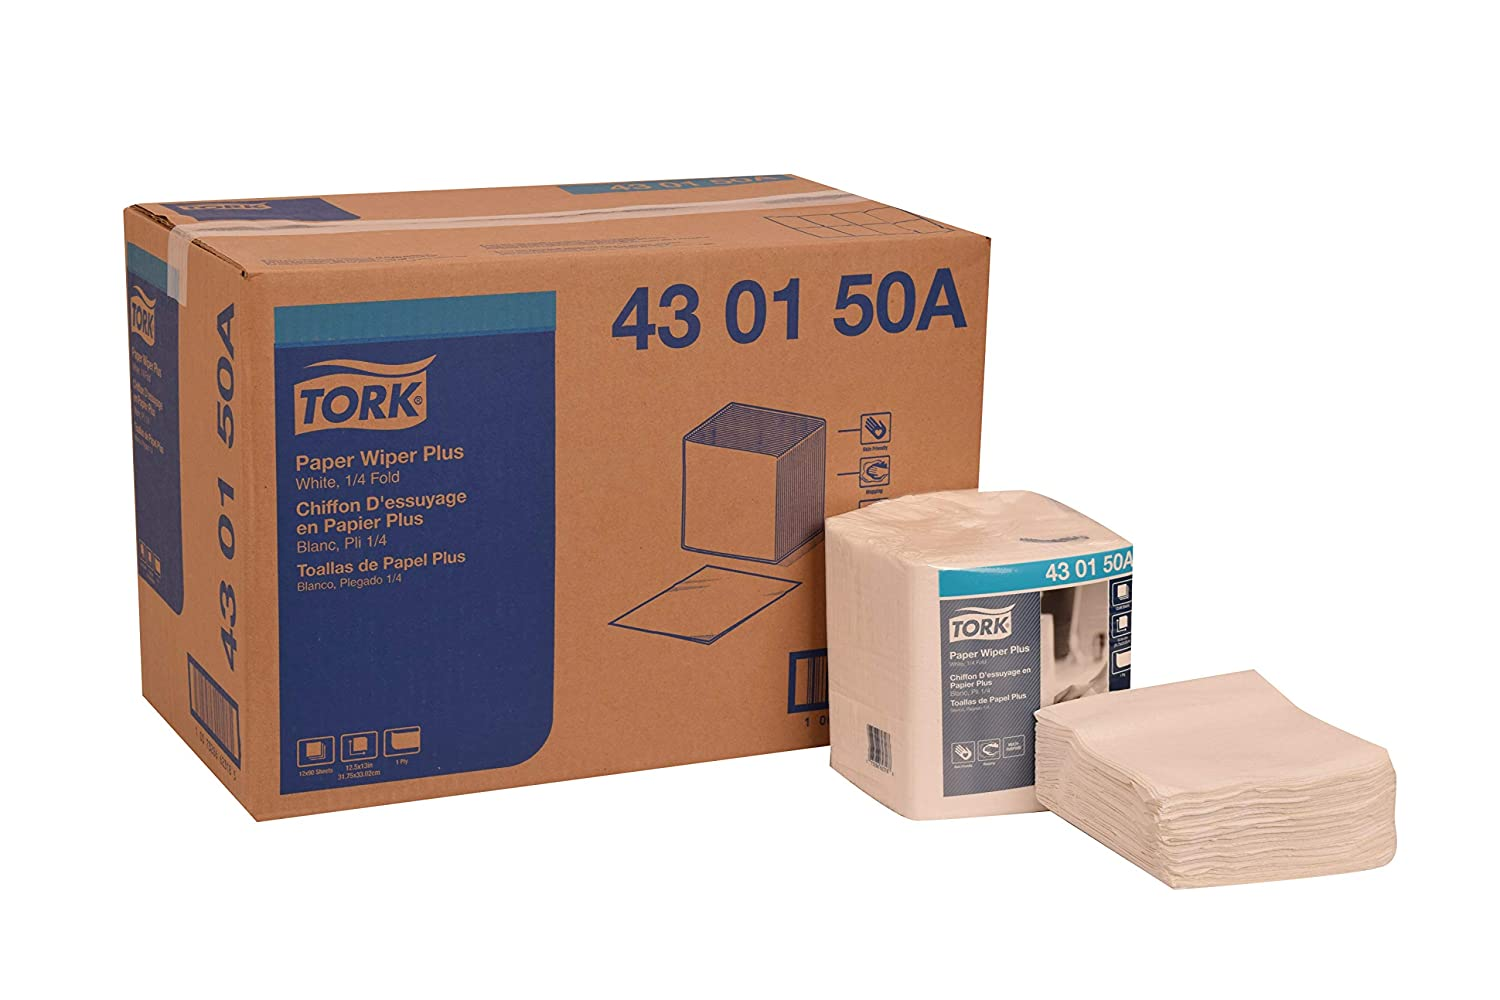 Tork 430150A Paper Wiper Plus, 1/4 Fold, 1-Ply, 12.5